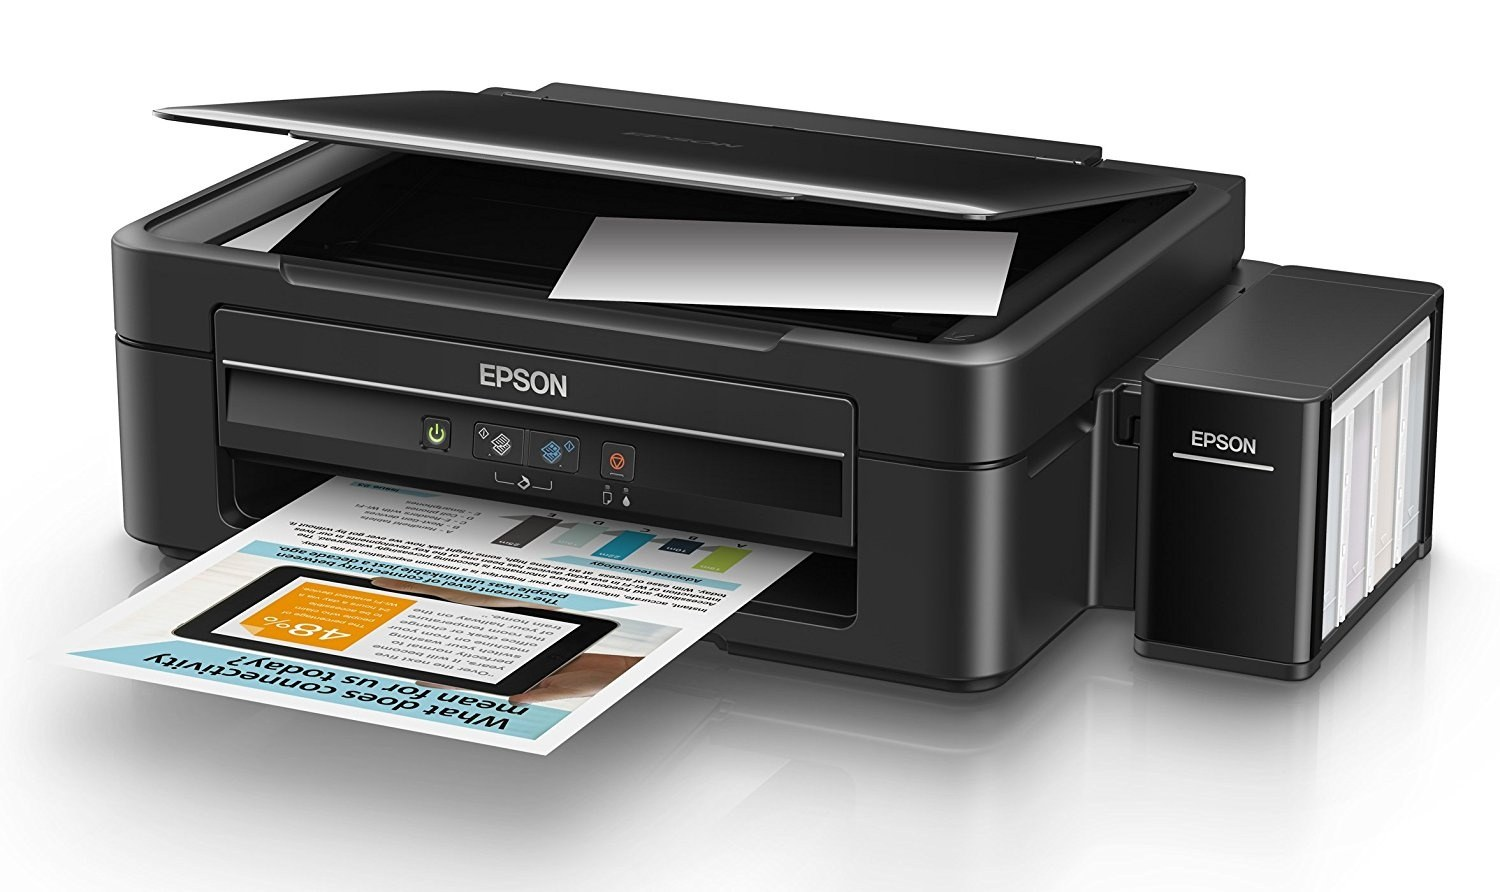 Which is better for an ink tank system, an Epson printer or